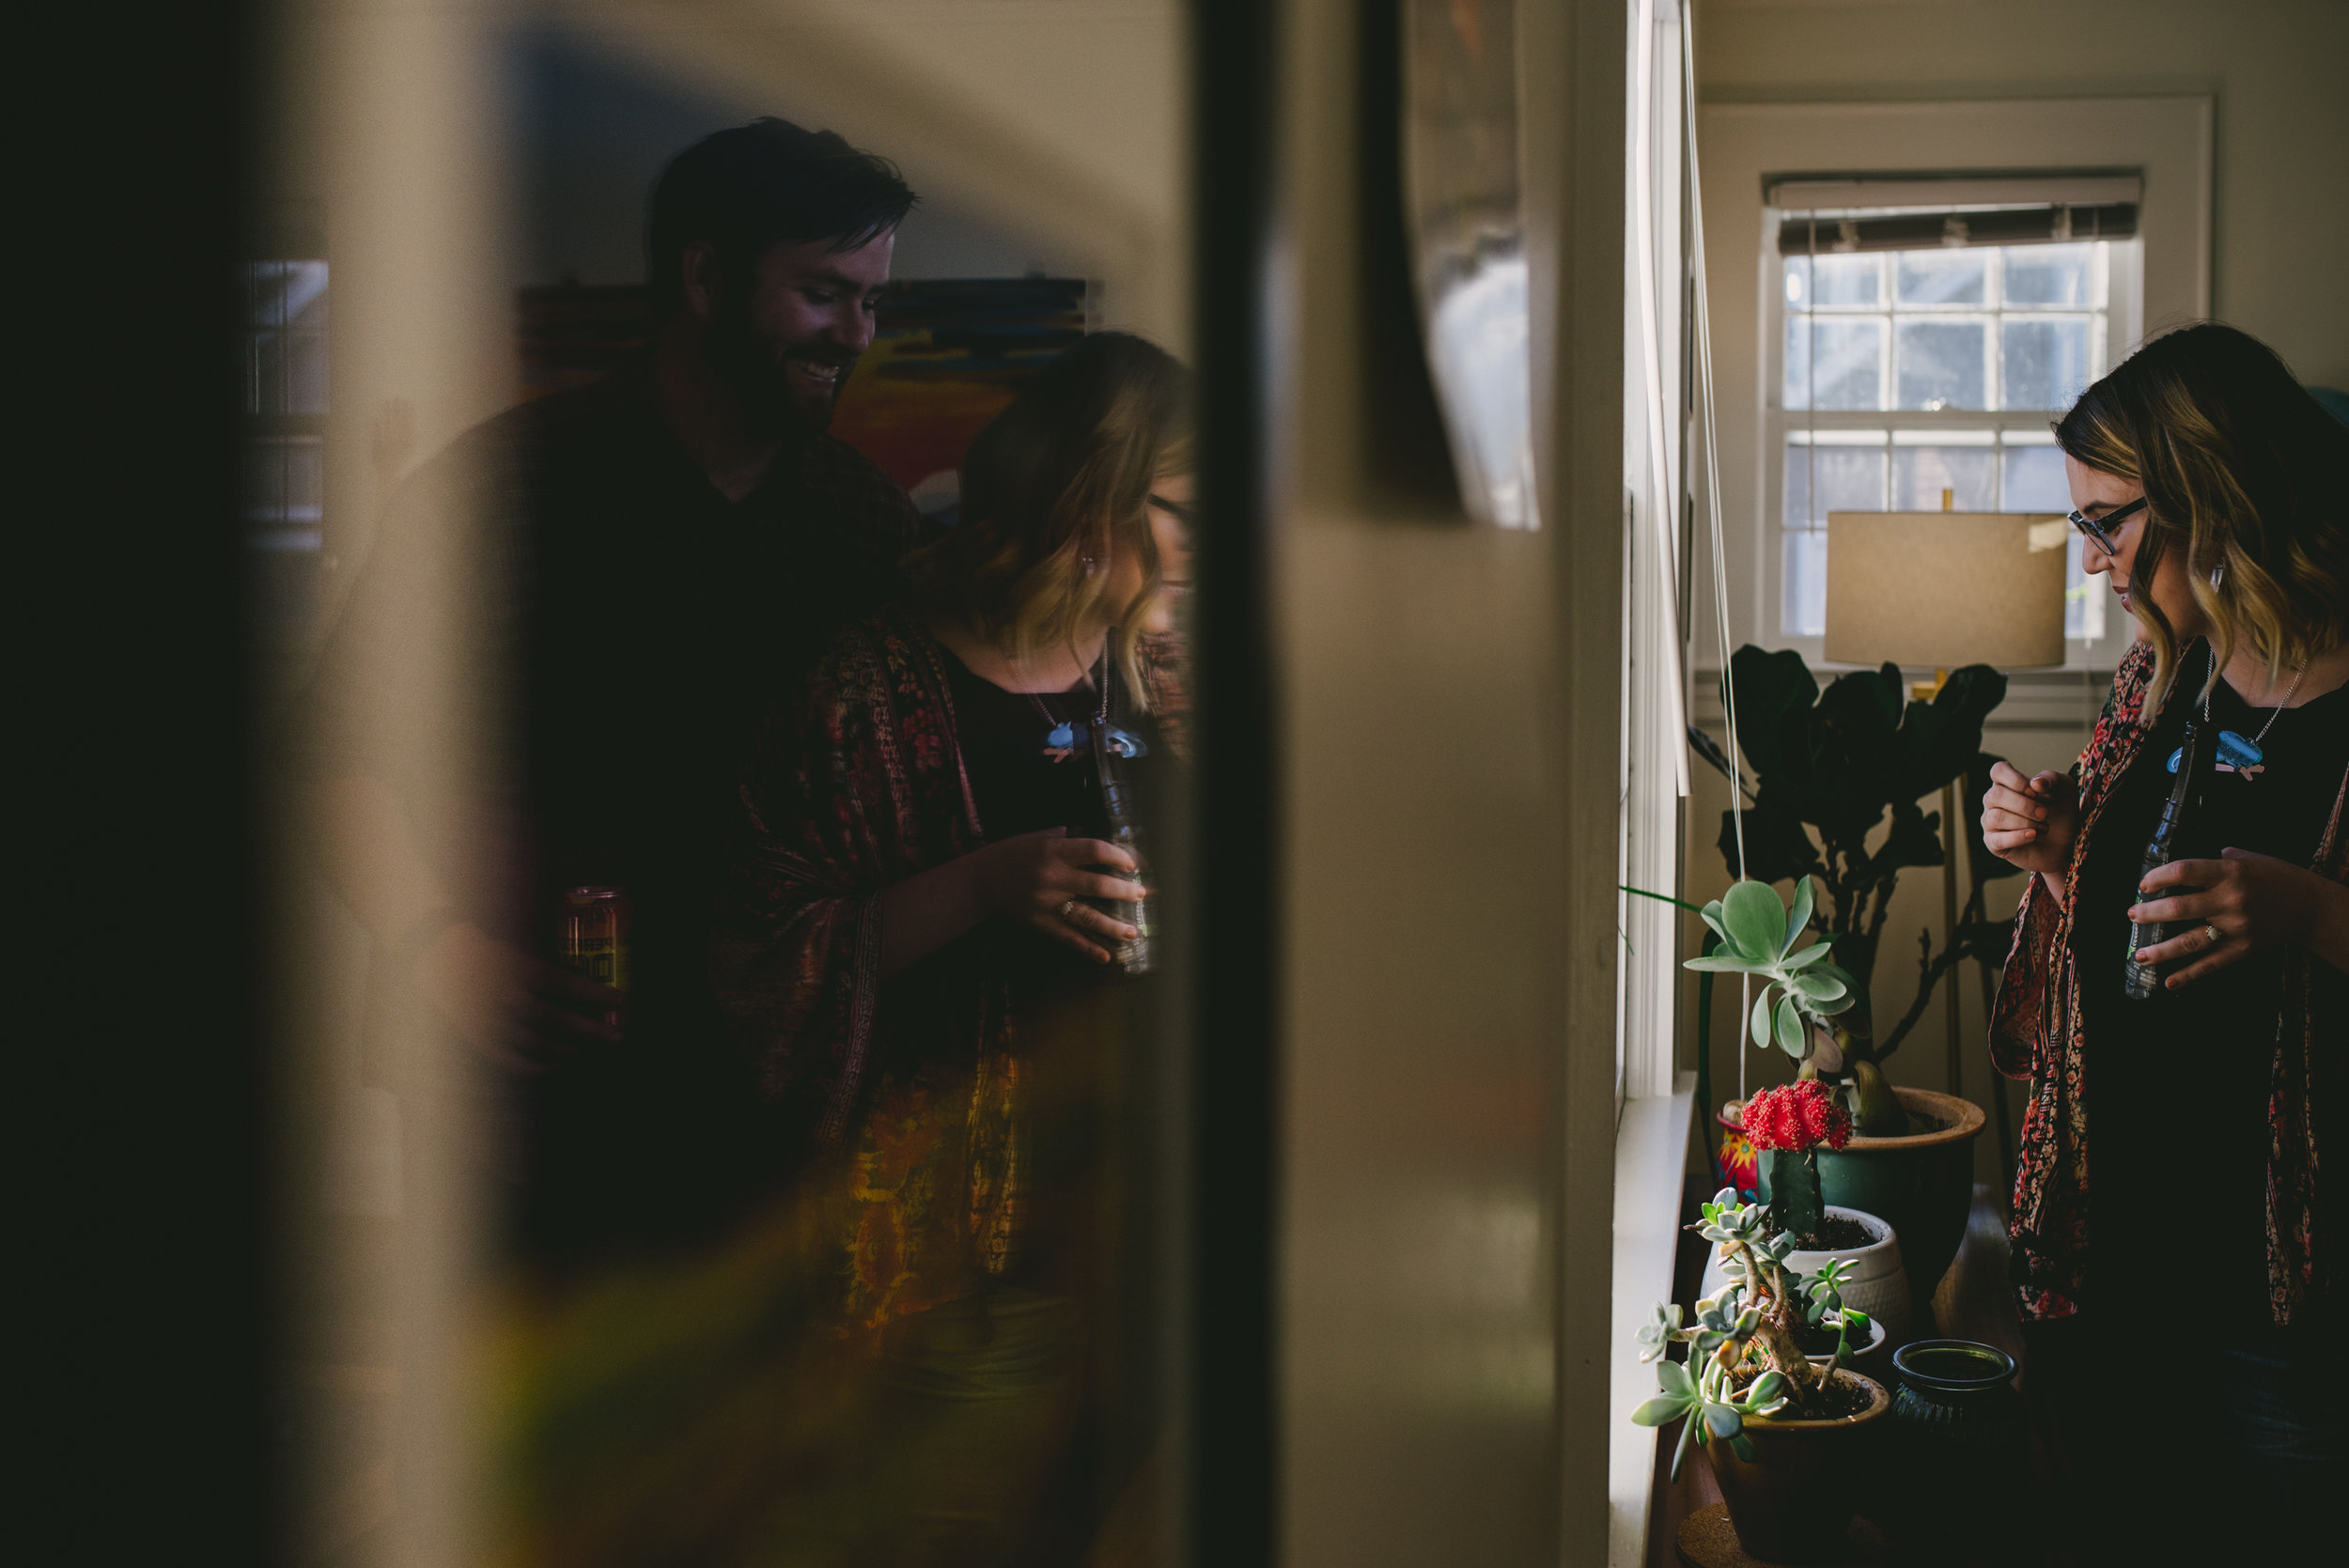 He was sneaking up behind her as she showed me her favorite plants at their home in the Lindley Park neighborhood in Greensboro, North Carolina